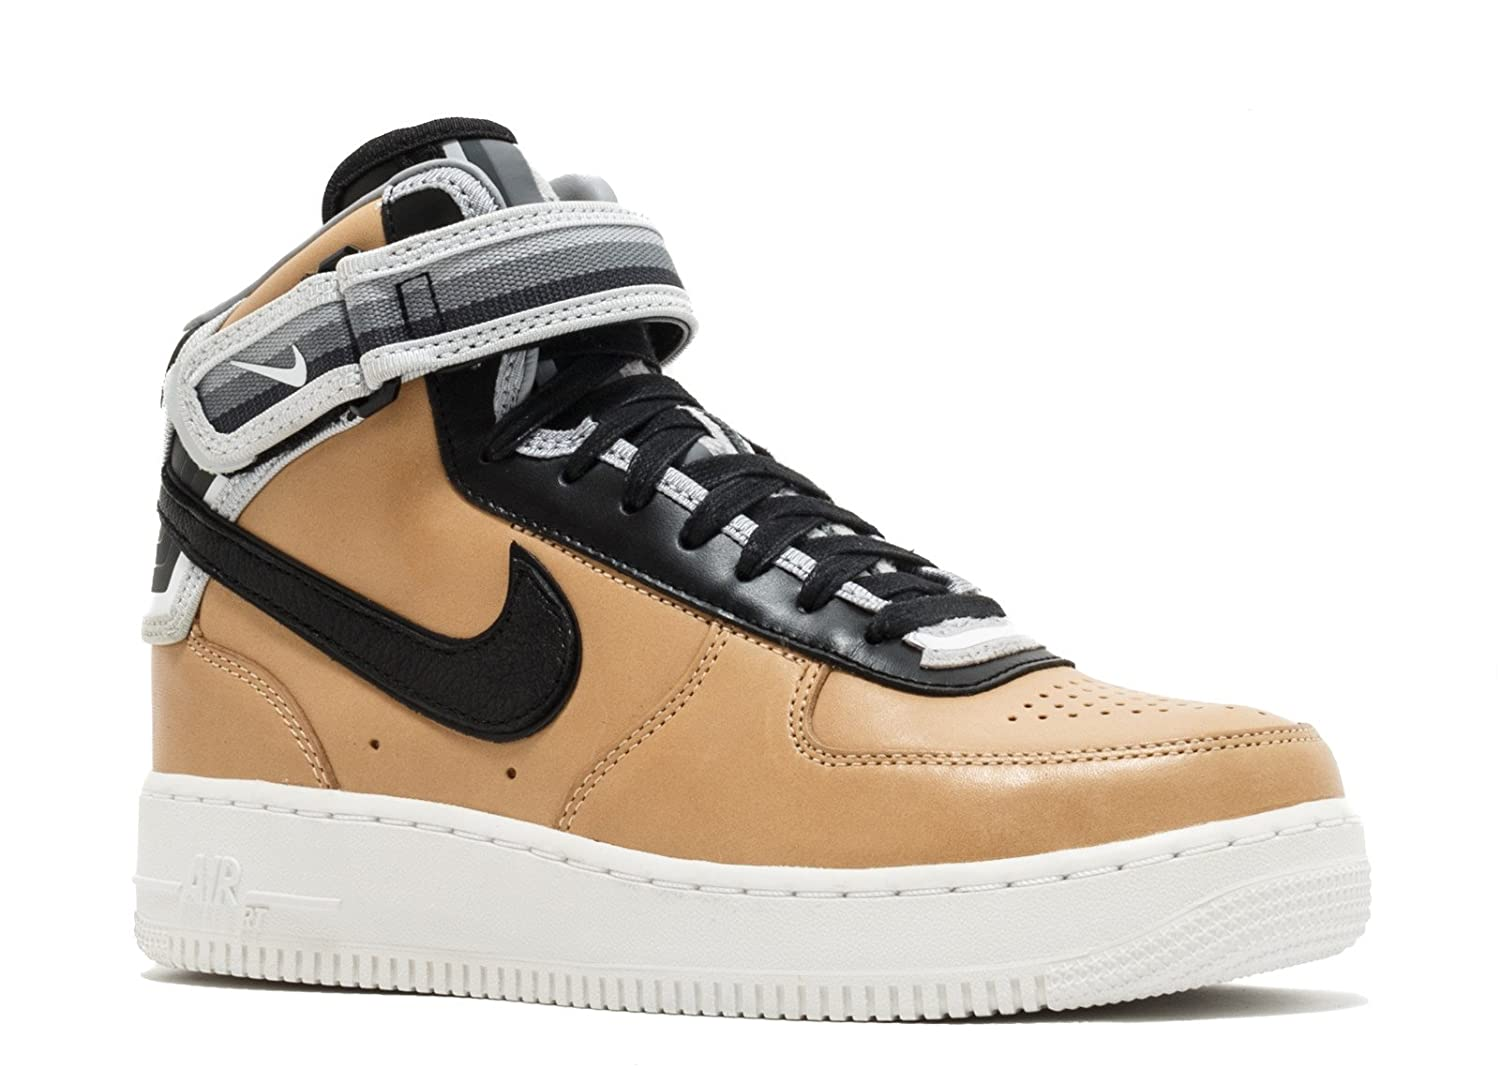 [NIKE - ナイキ] AIR FORCE 1 MID SP/TISCI 'TISCI' - 677130-200 (メンズ) B077PKJFJ7  7.5